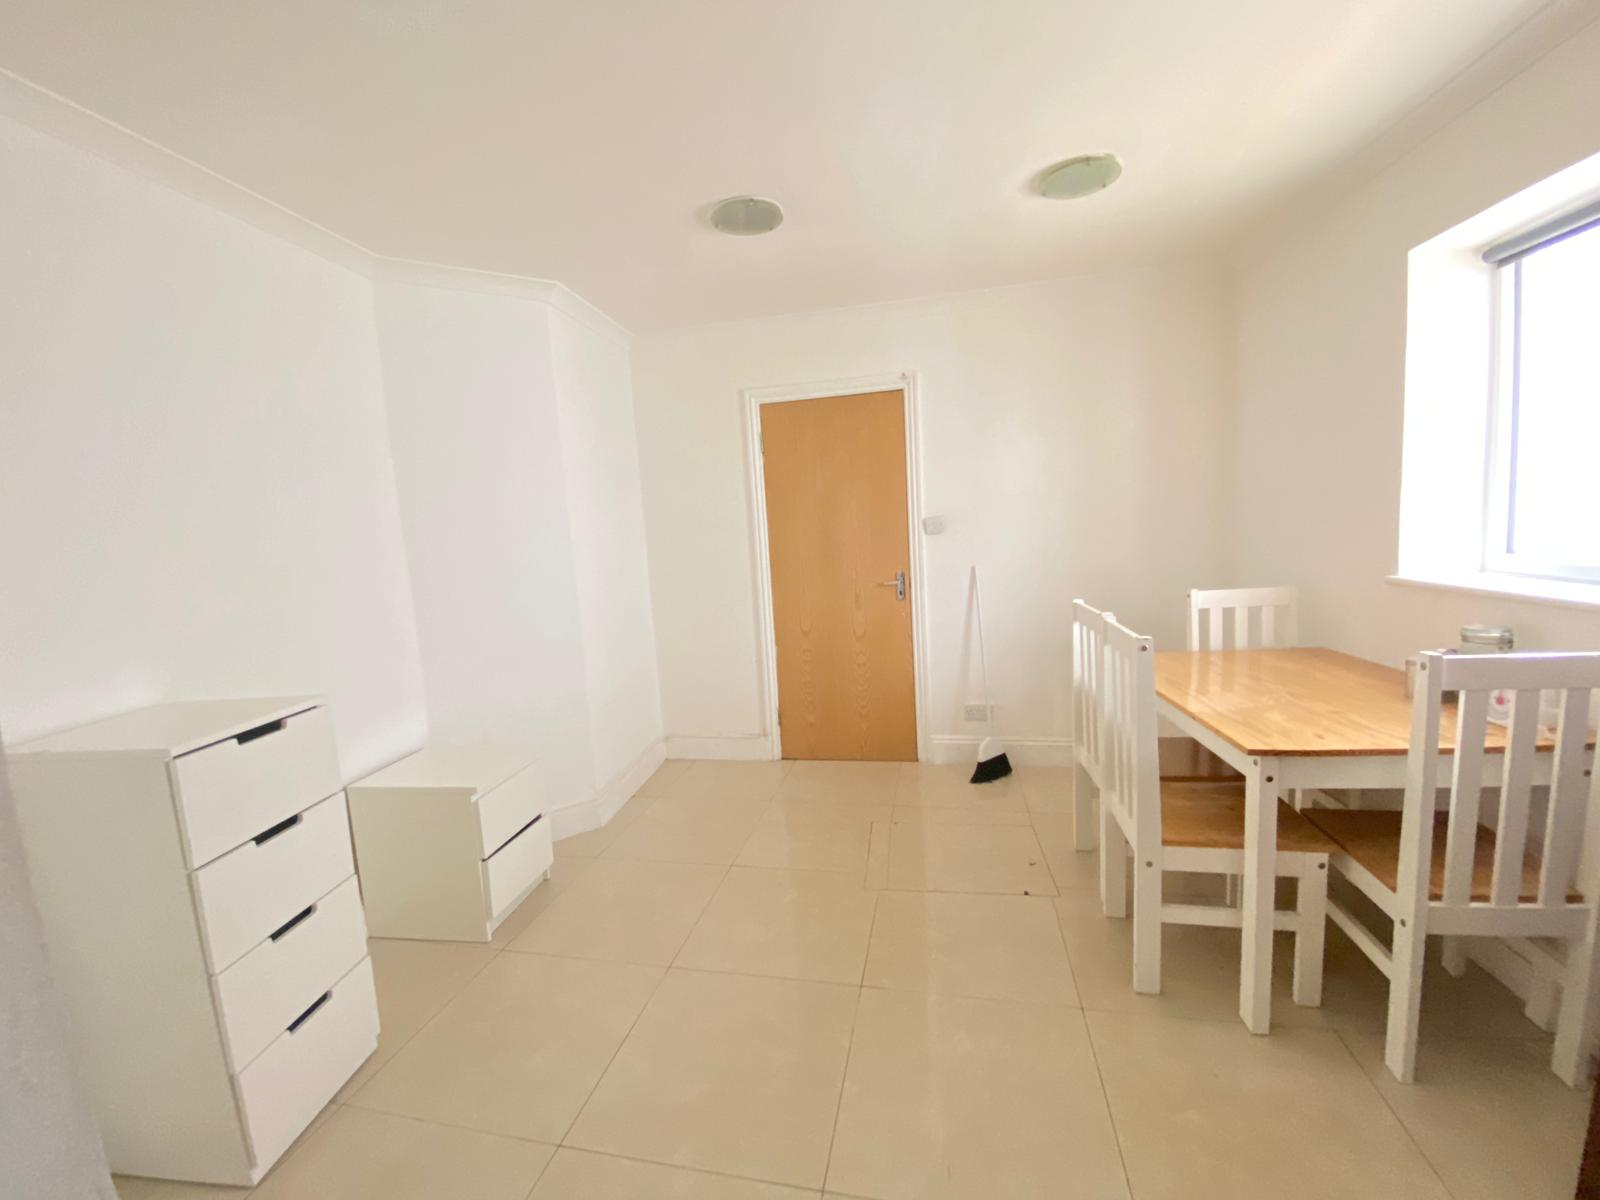 3 bed flat to rent in North End Road, West Kensington, London 3